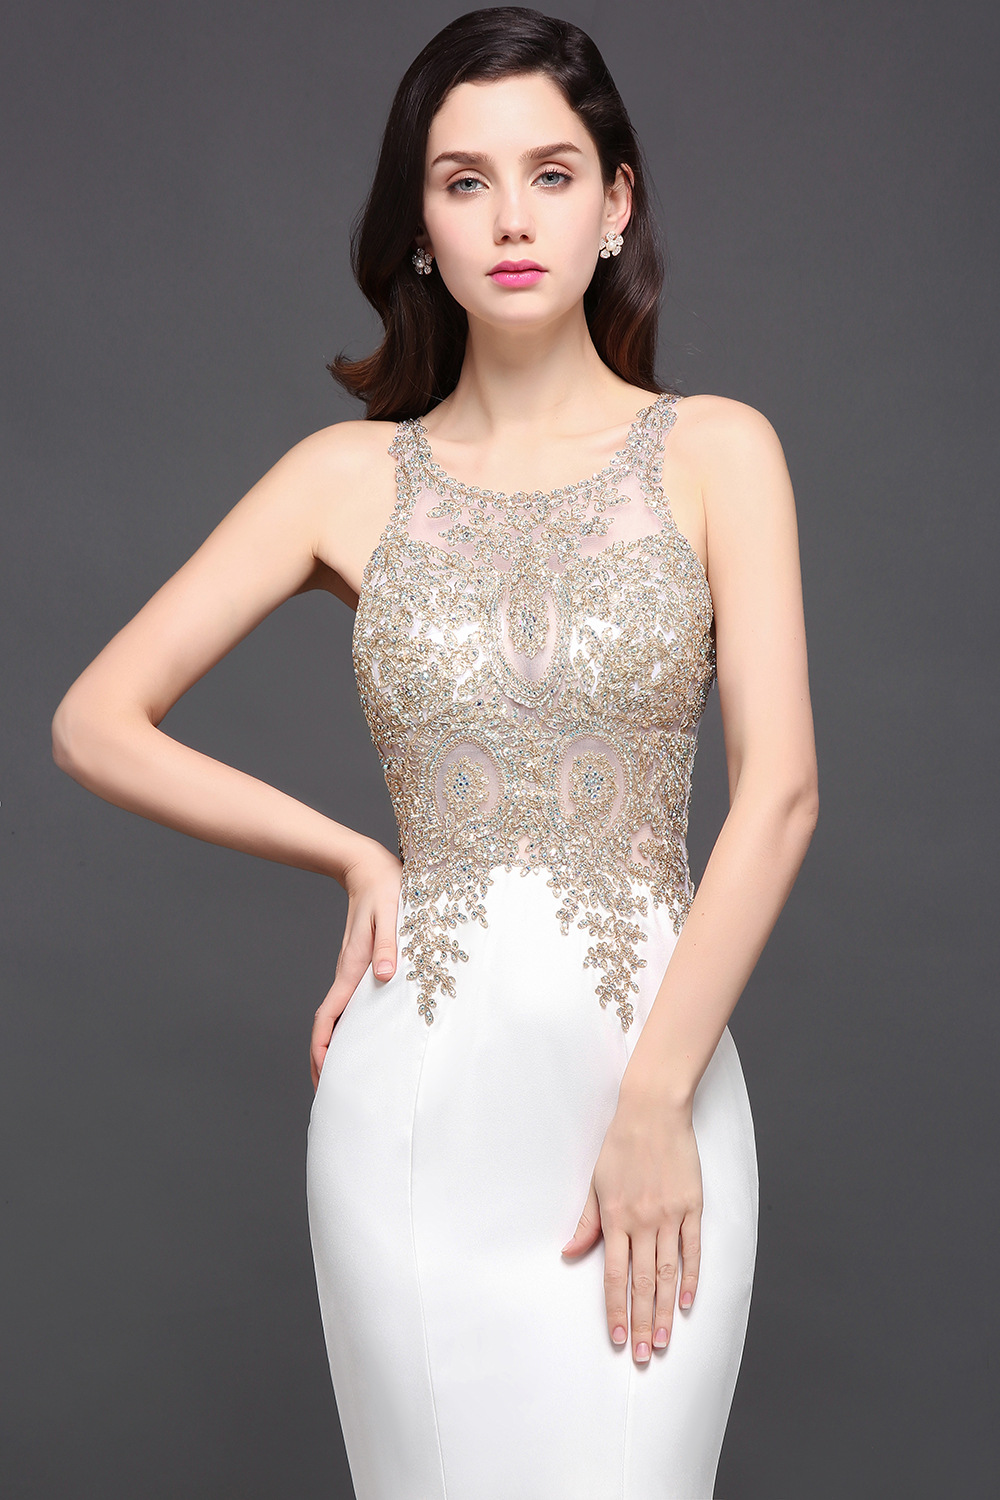 Vestido De Festa Illusion Crew Neck White Mermaid Long Evening Dresses 2017 Lace Applique Beaded Formal Party Prom Dresses